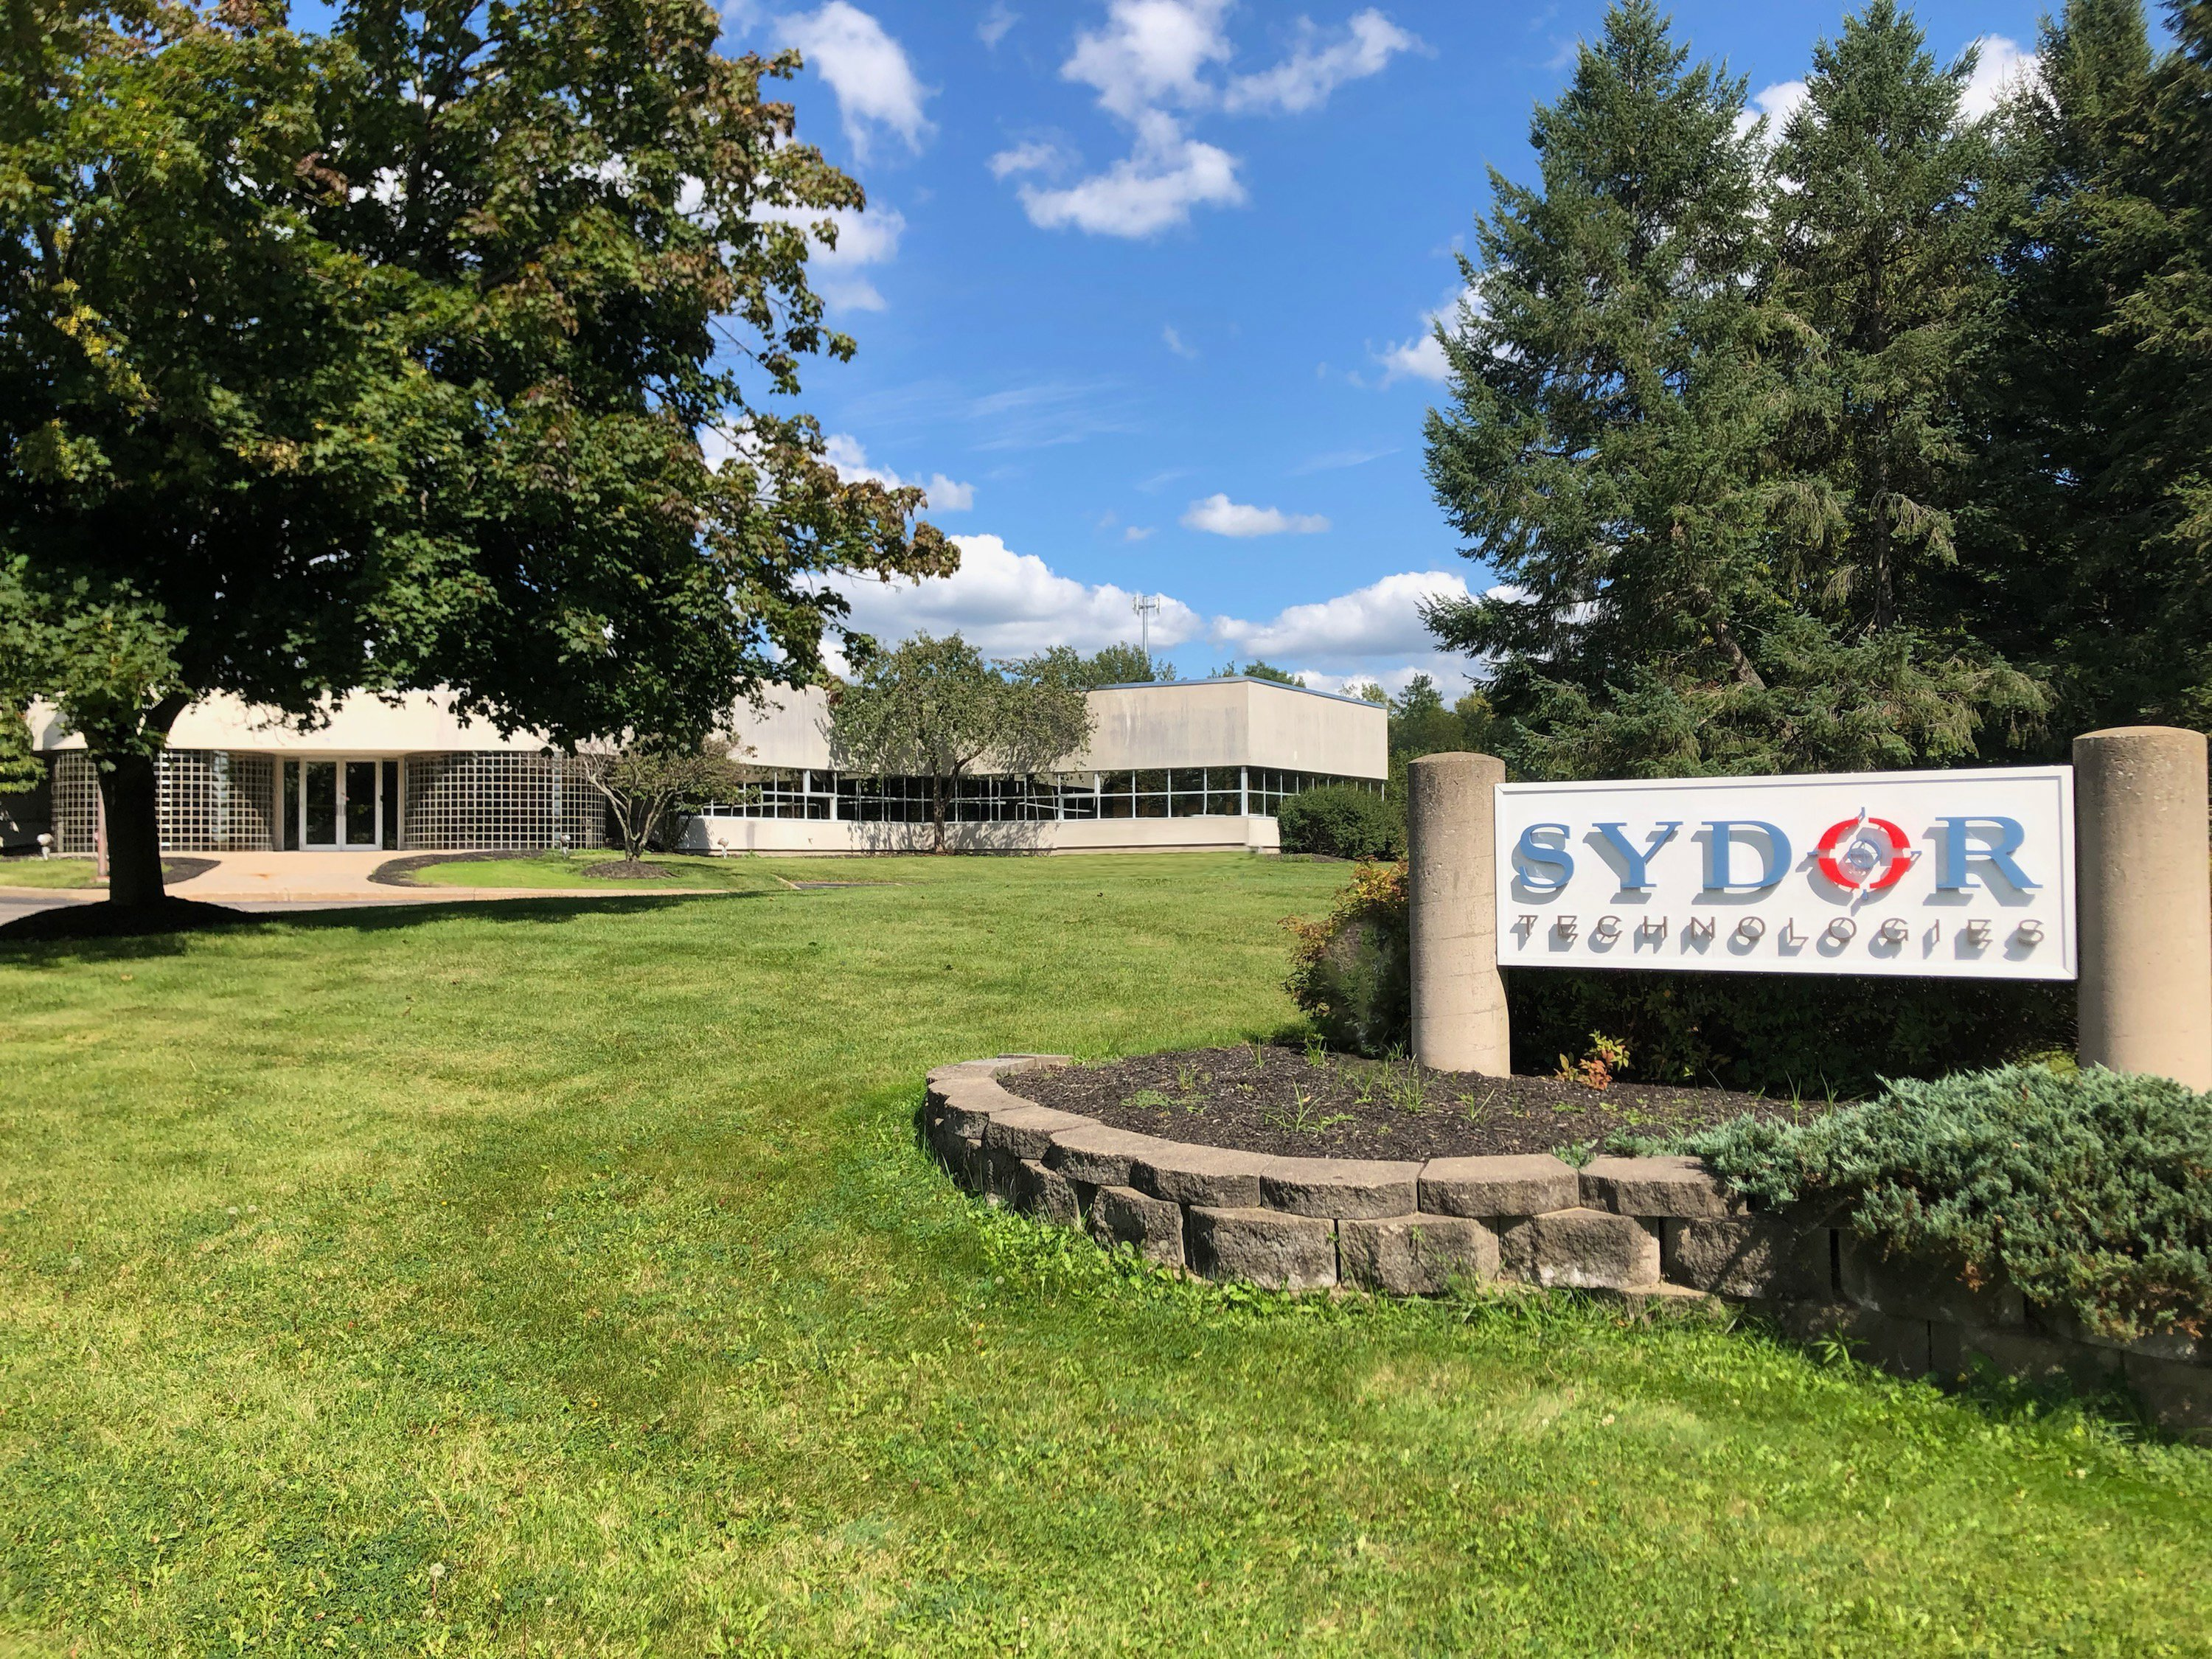 Sydor Technologies Building